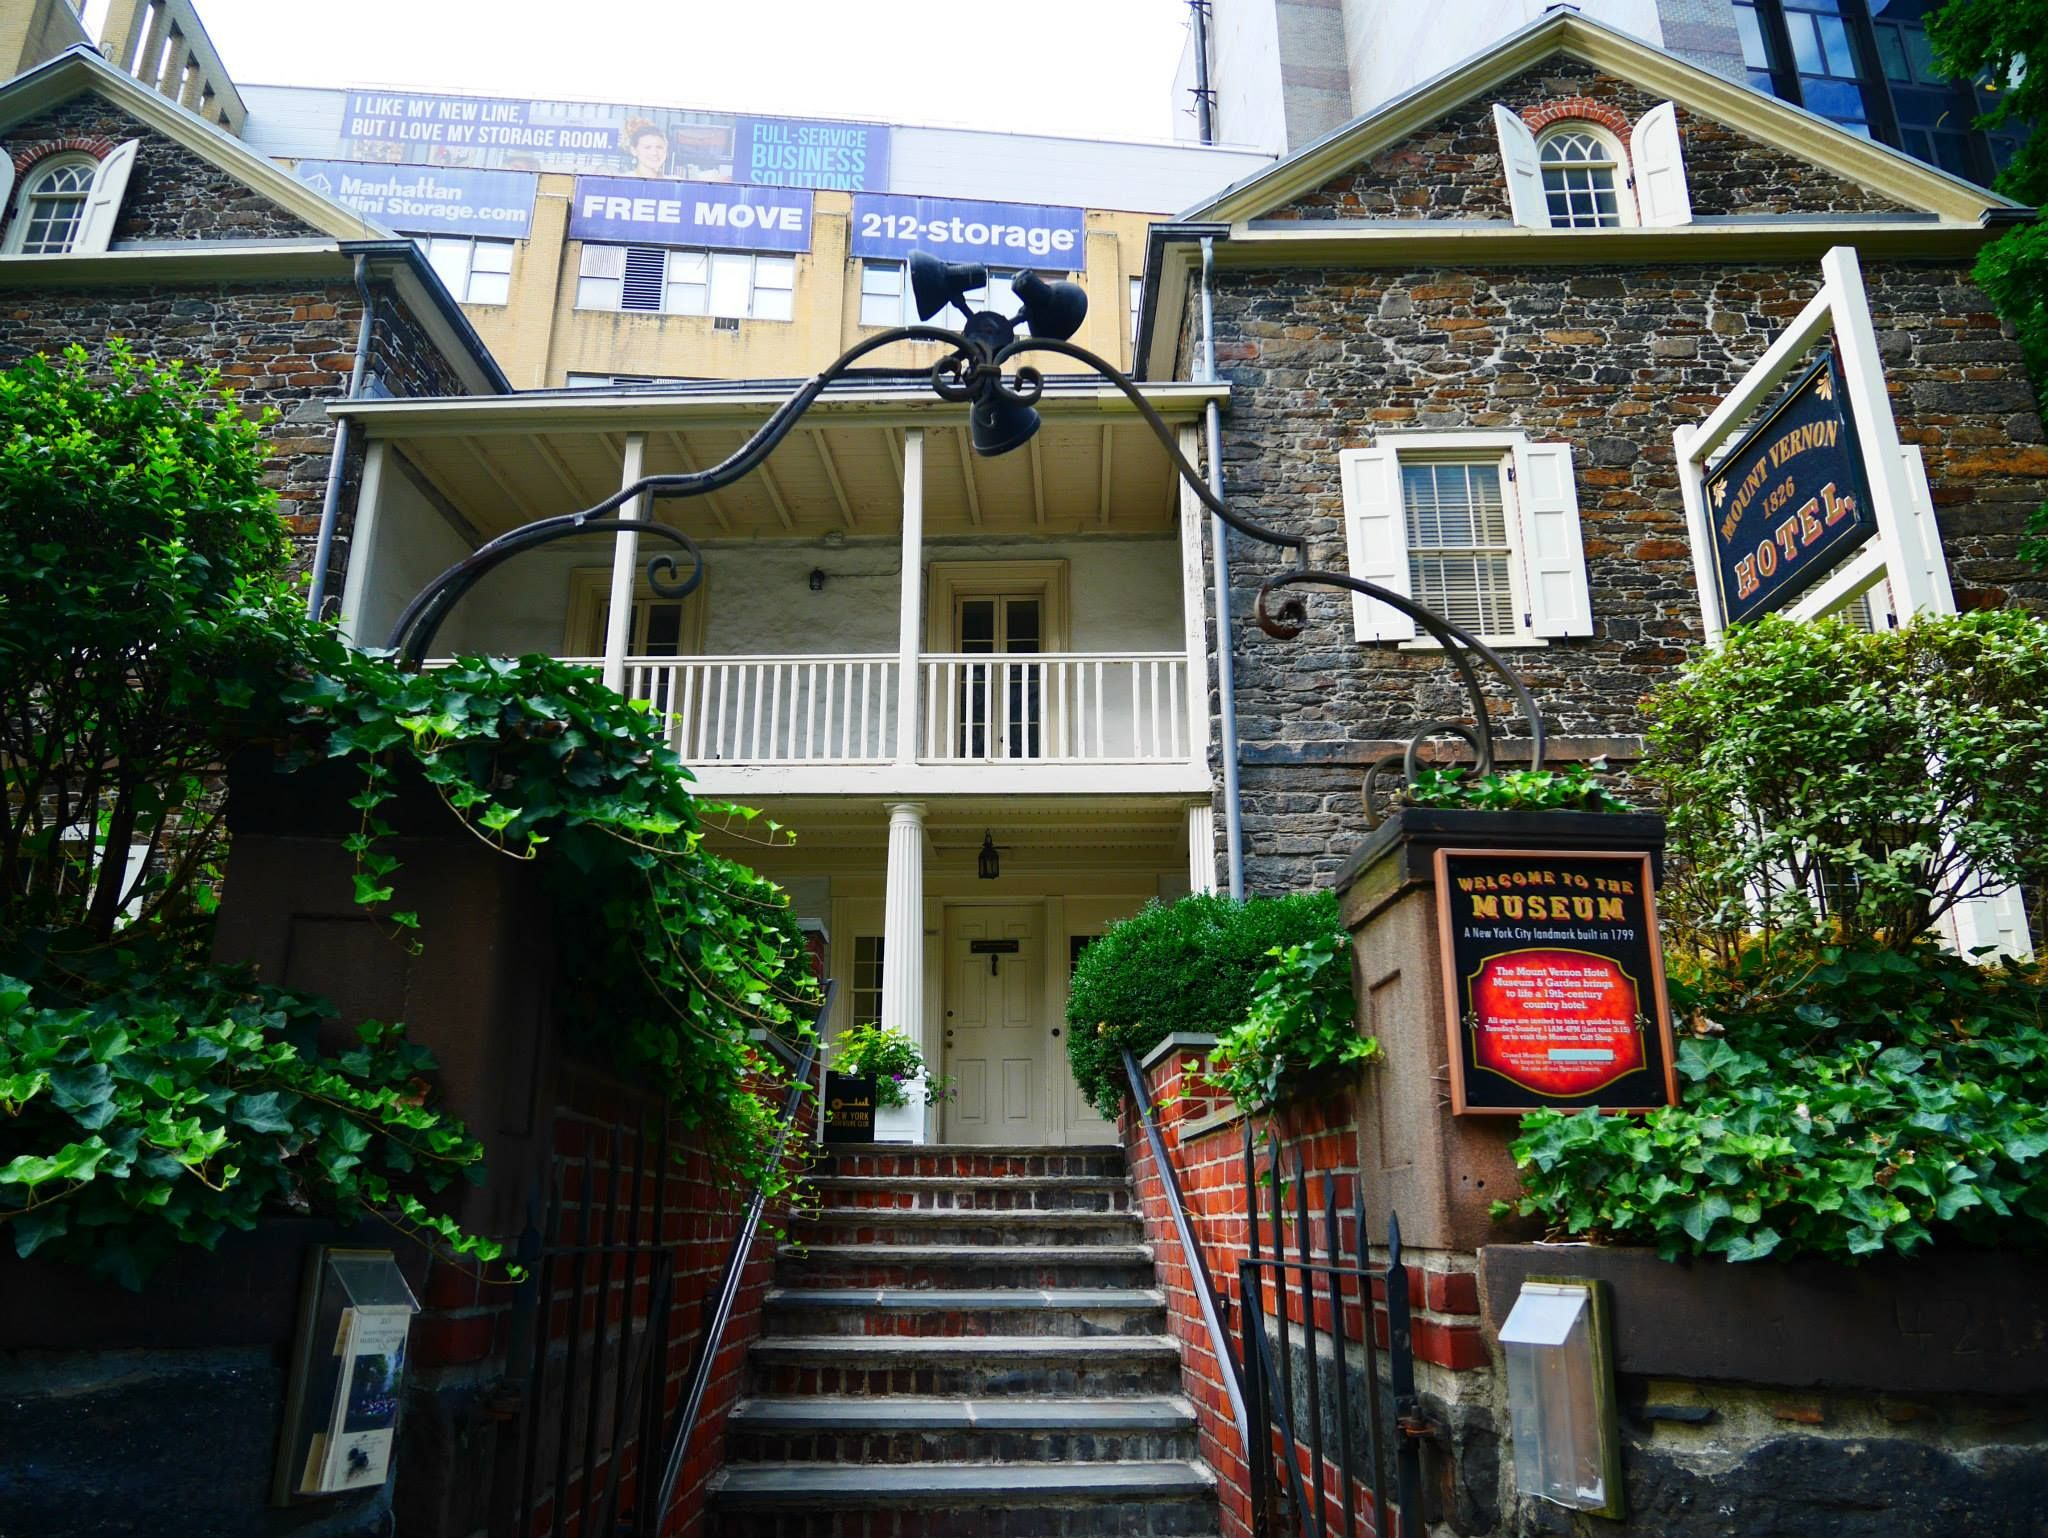 On July 18, 2015, New York Adventure Club Roamed The Historic Mount Vernon  Hotel Museum U0026 Garden To Figure Out Who Killed Who In A 19th Century Themed  ...